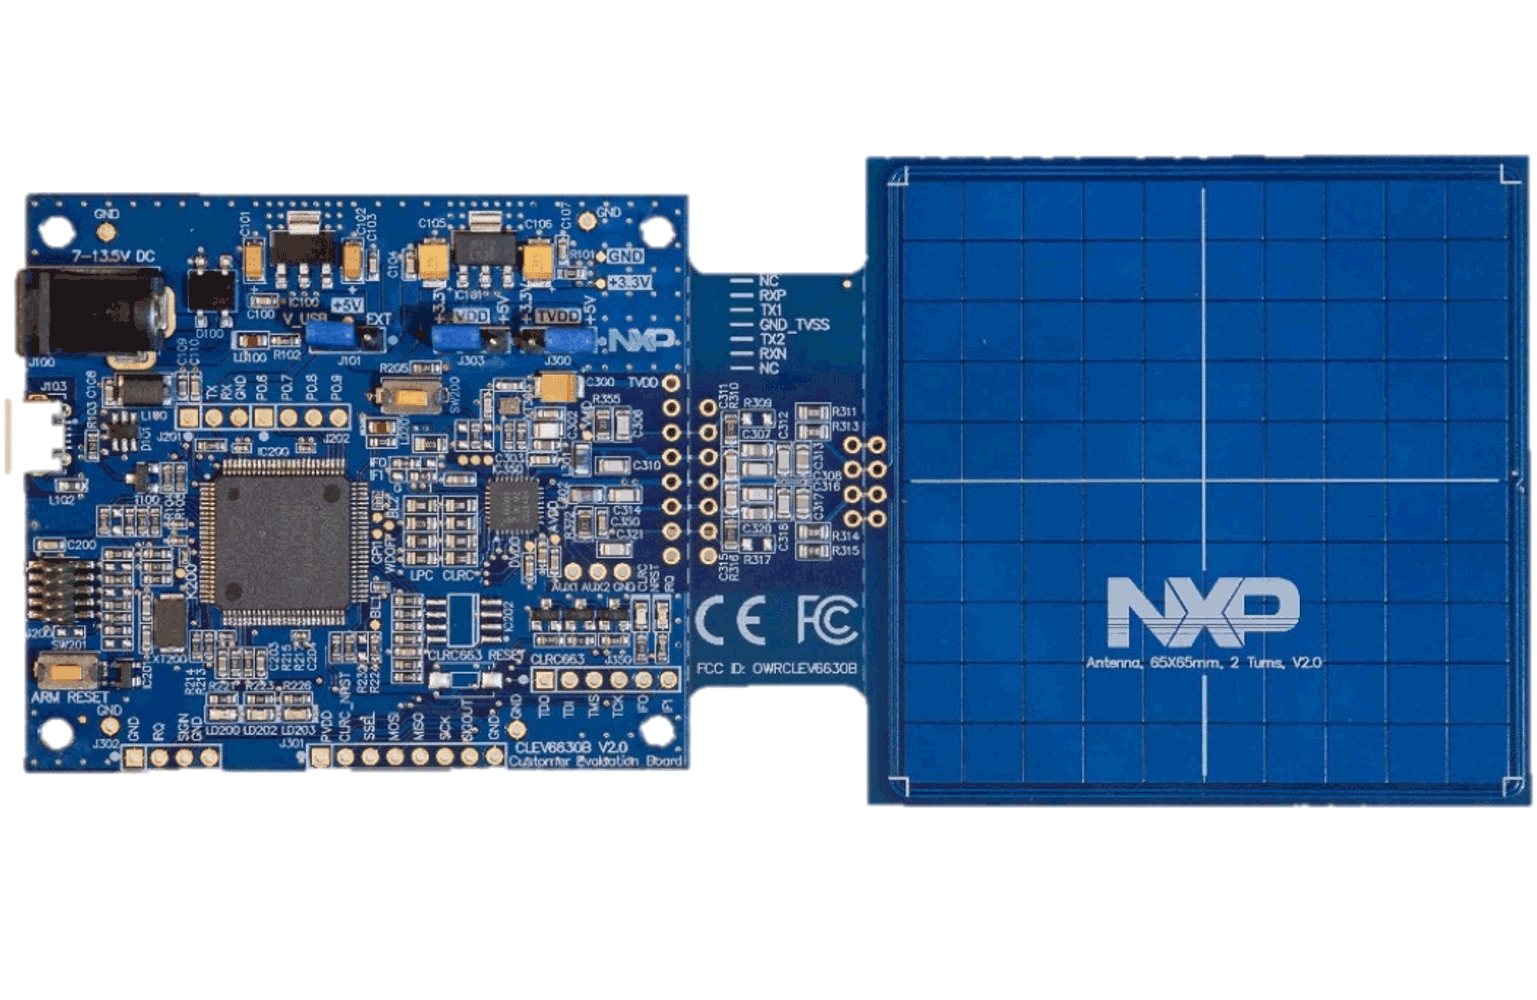 CLRC663 <i&gt;plus</i&gt; NFC Frontend Development Kit for Access Management Applications thumbnail